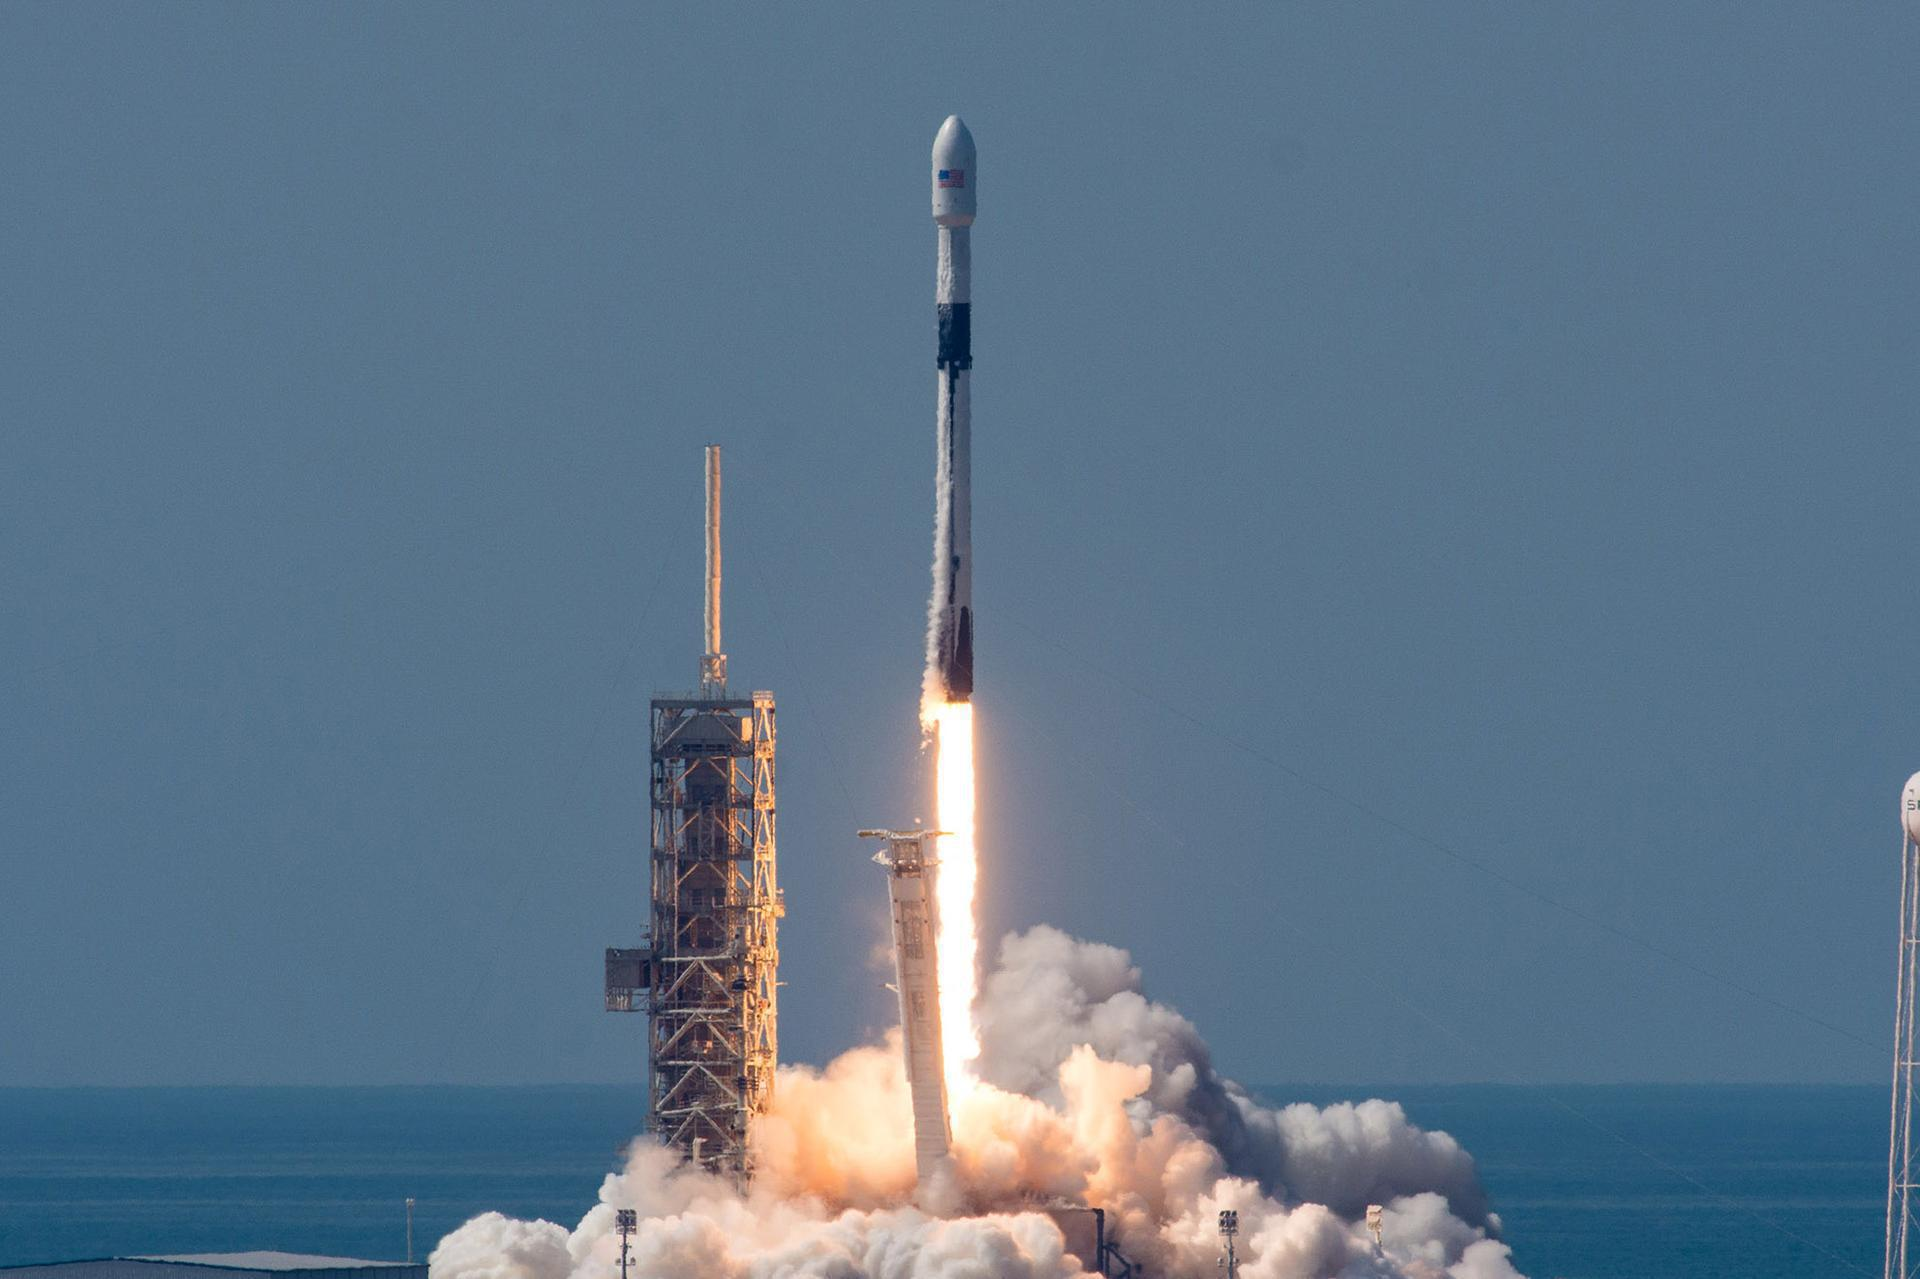 Falcon 9 Block 5 | Spaceflight GTO-2